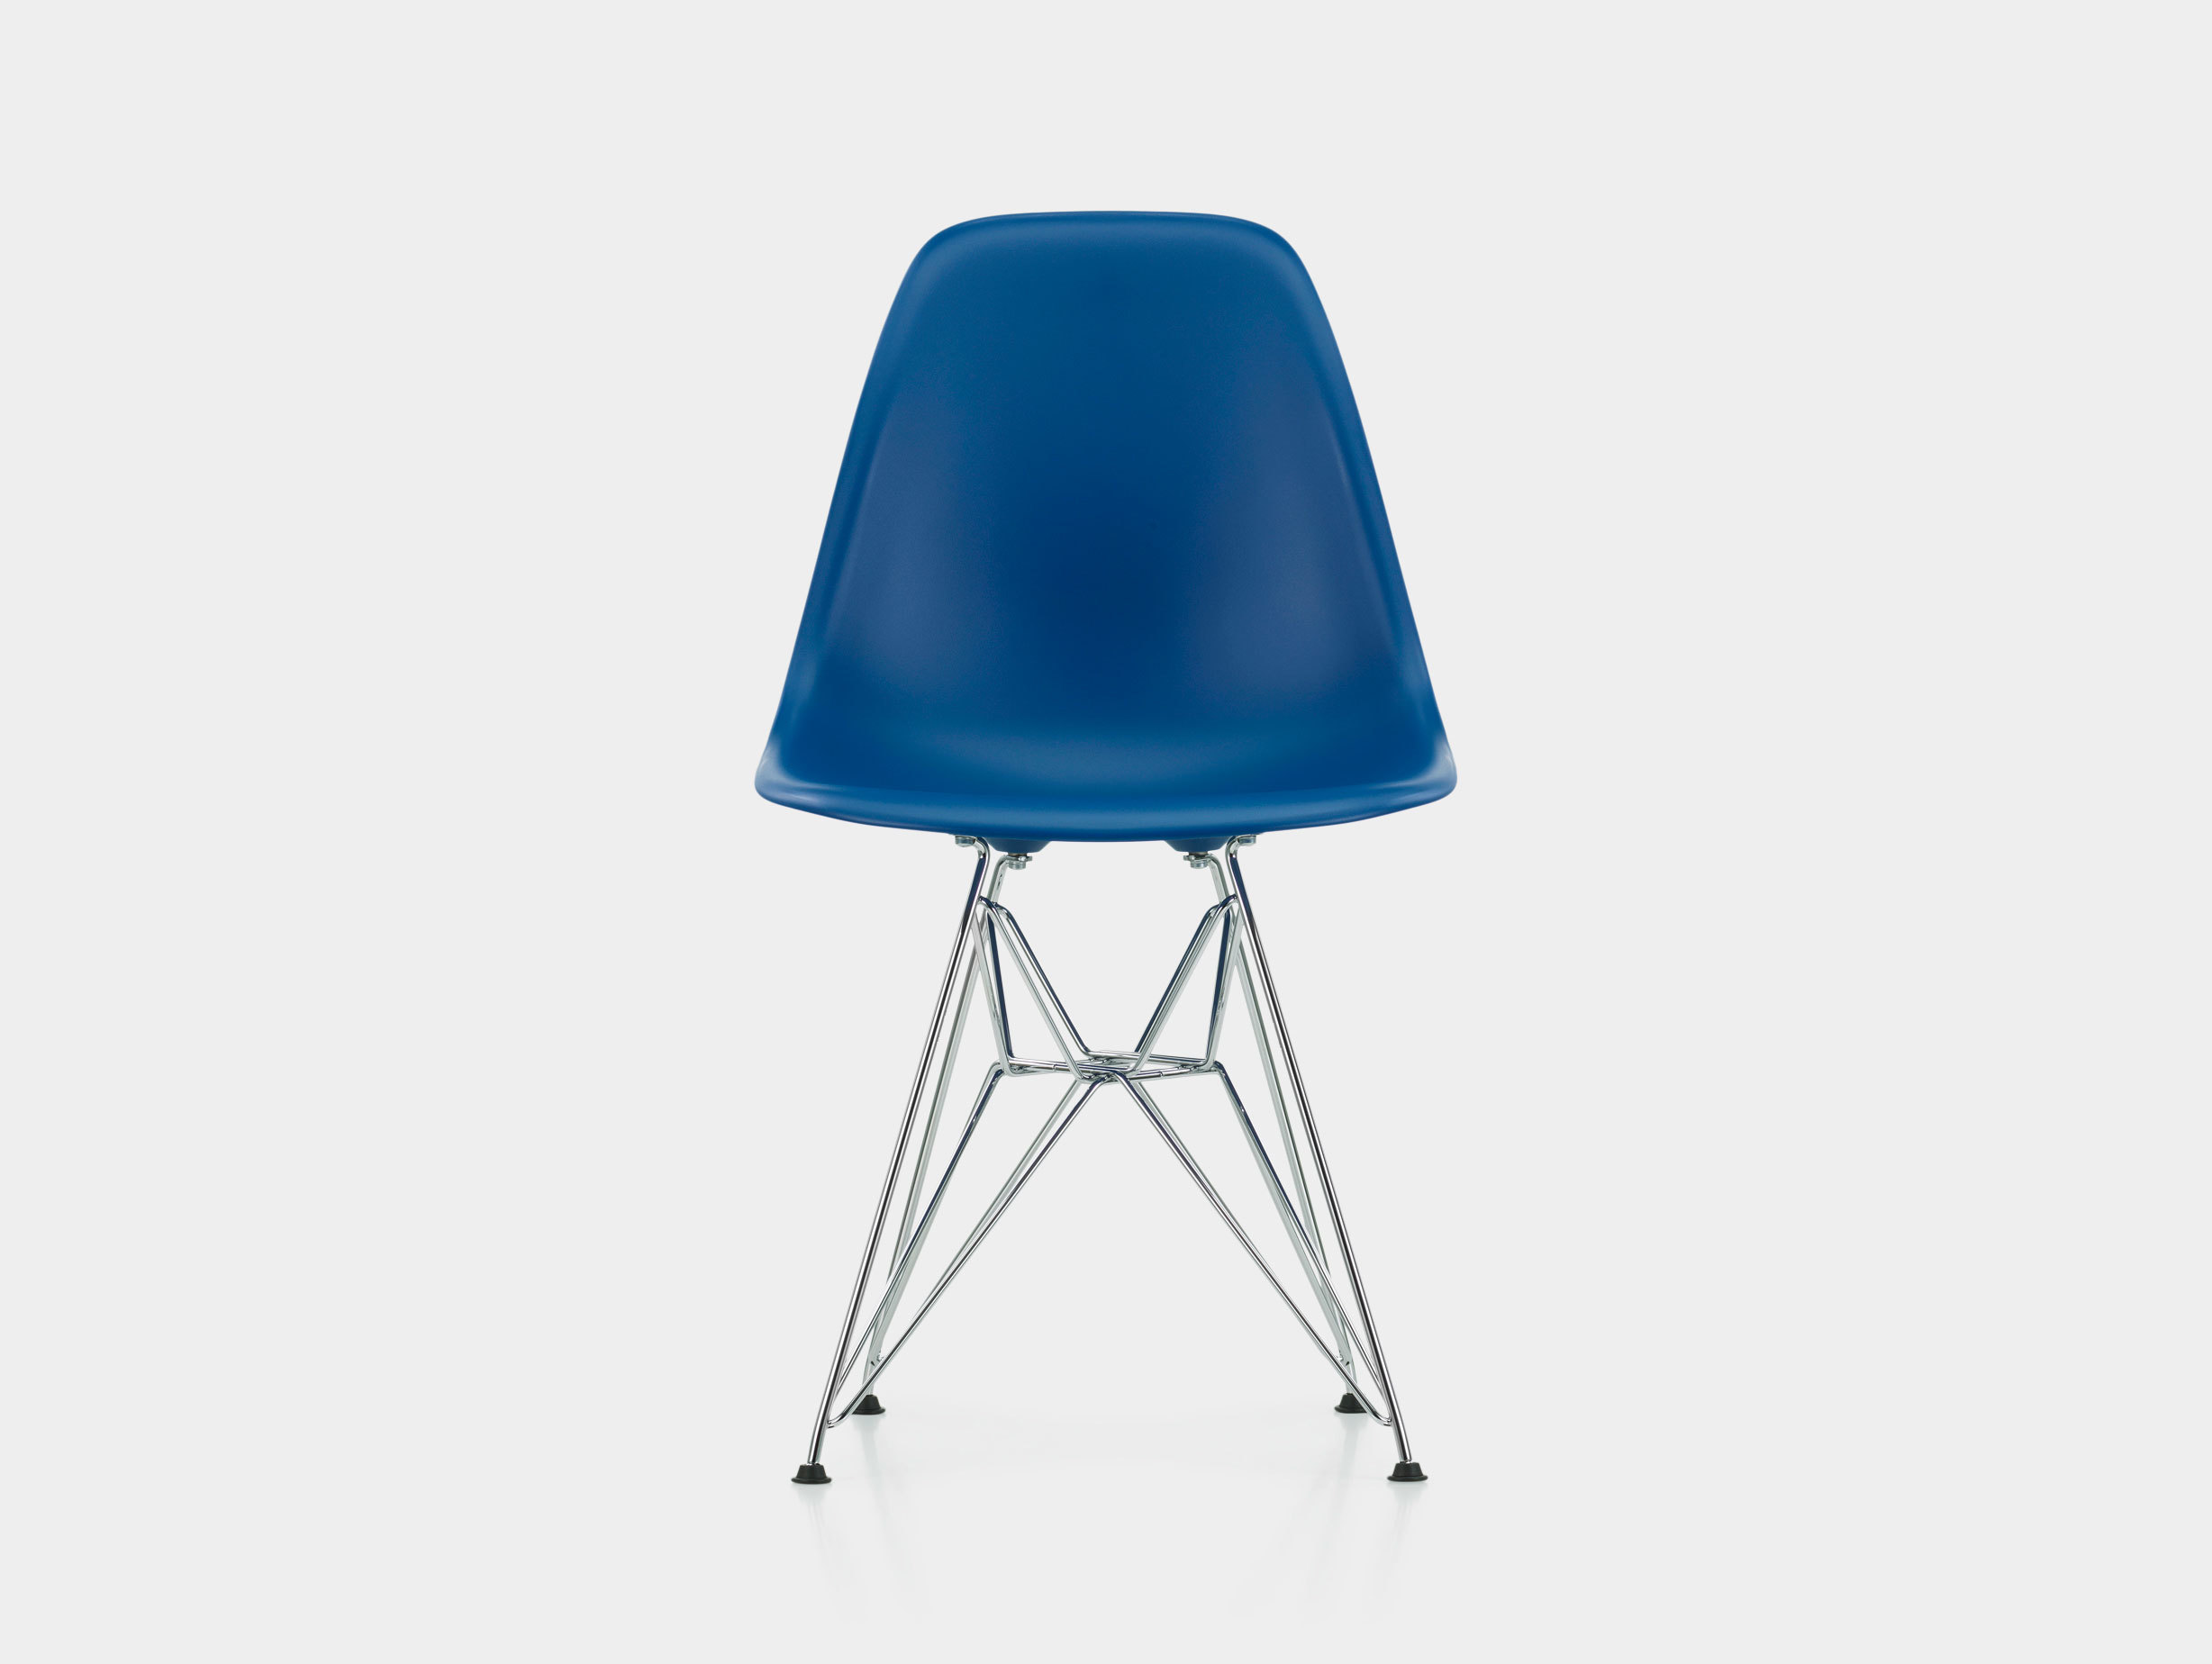 Eames DSR Plastic Side Chair image 5